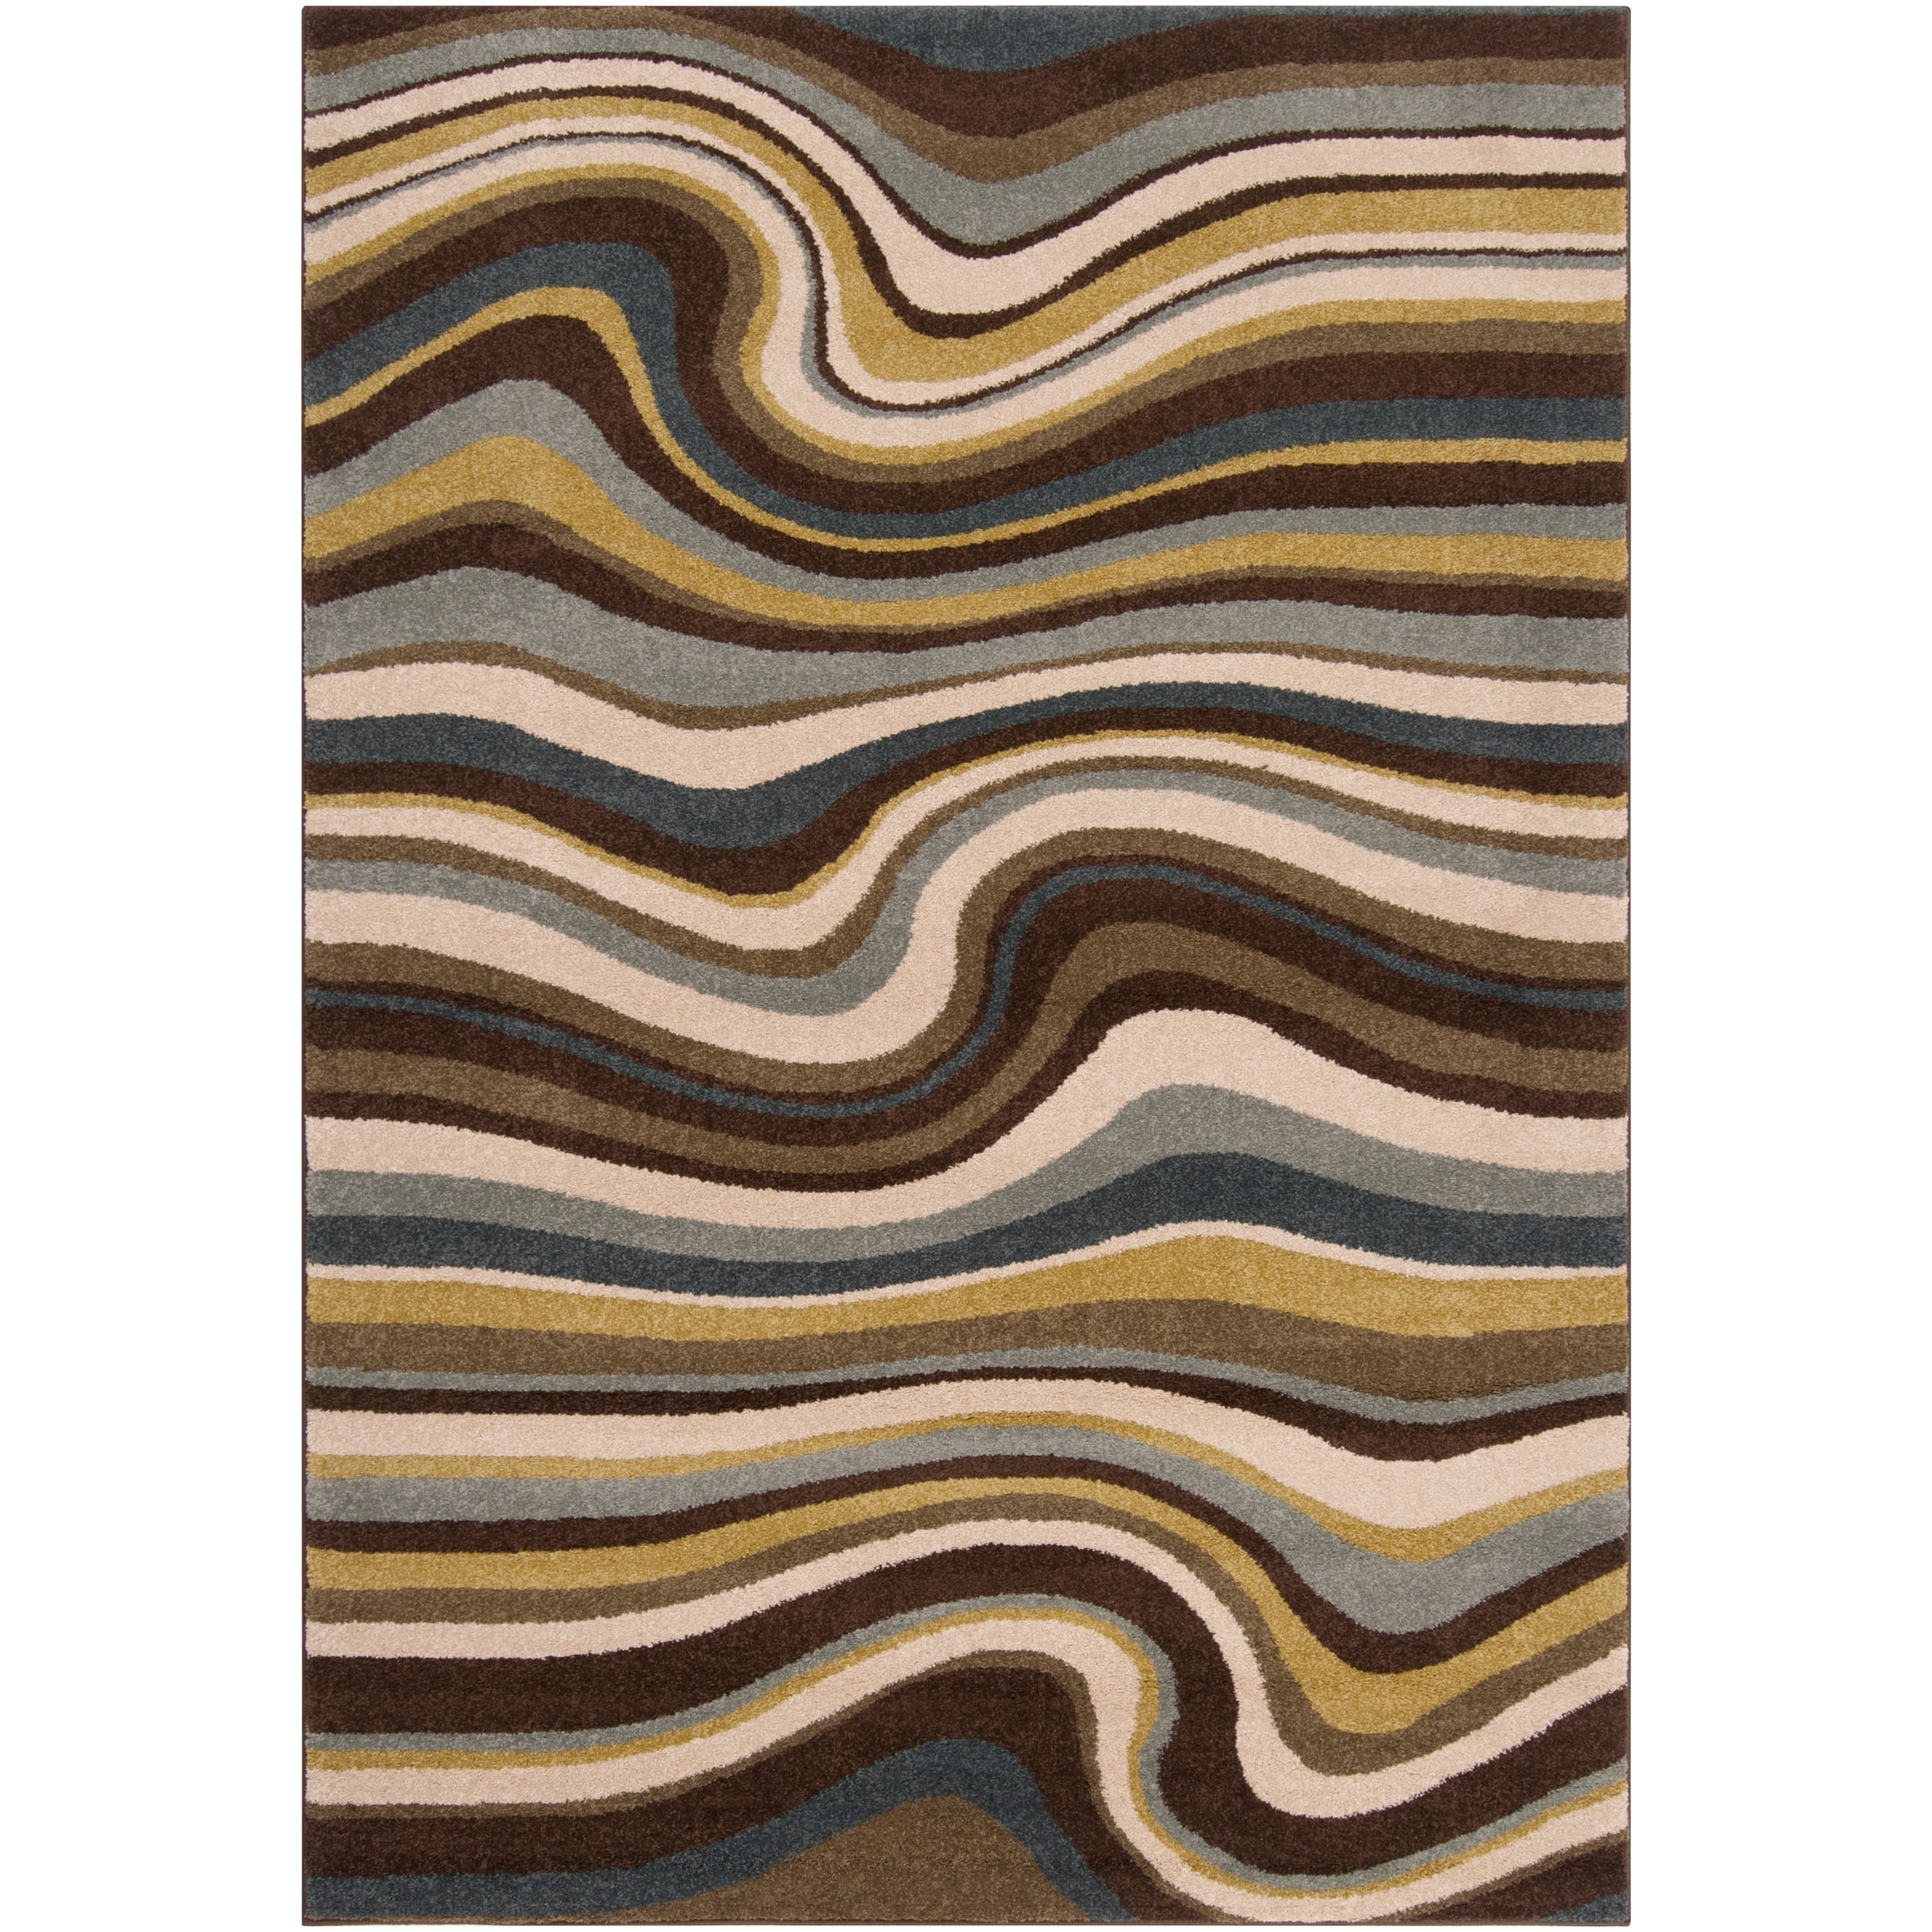 Meticulously Woven Contemporary Multi Colored Stripe Filey Abstract Rug (7'10 x 10')